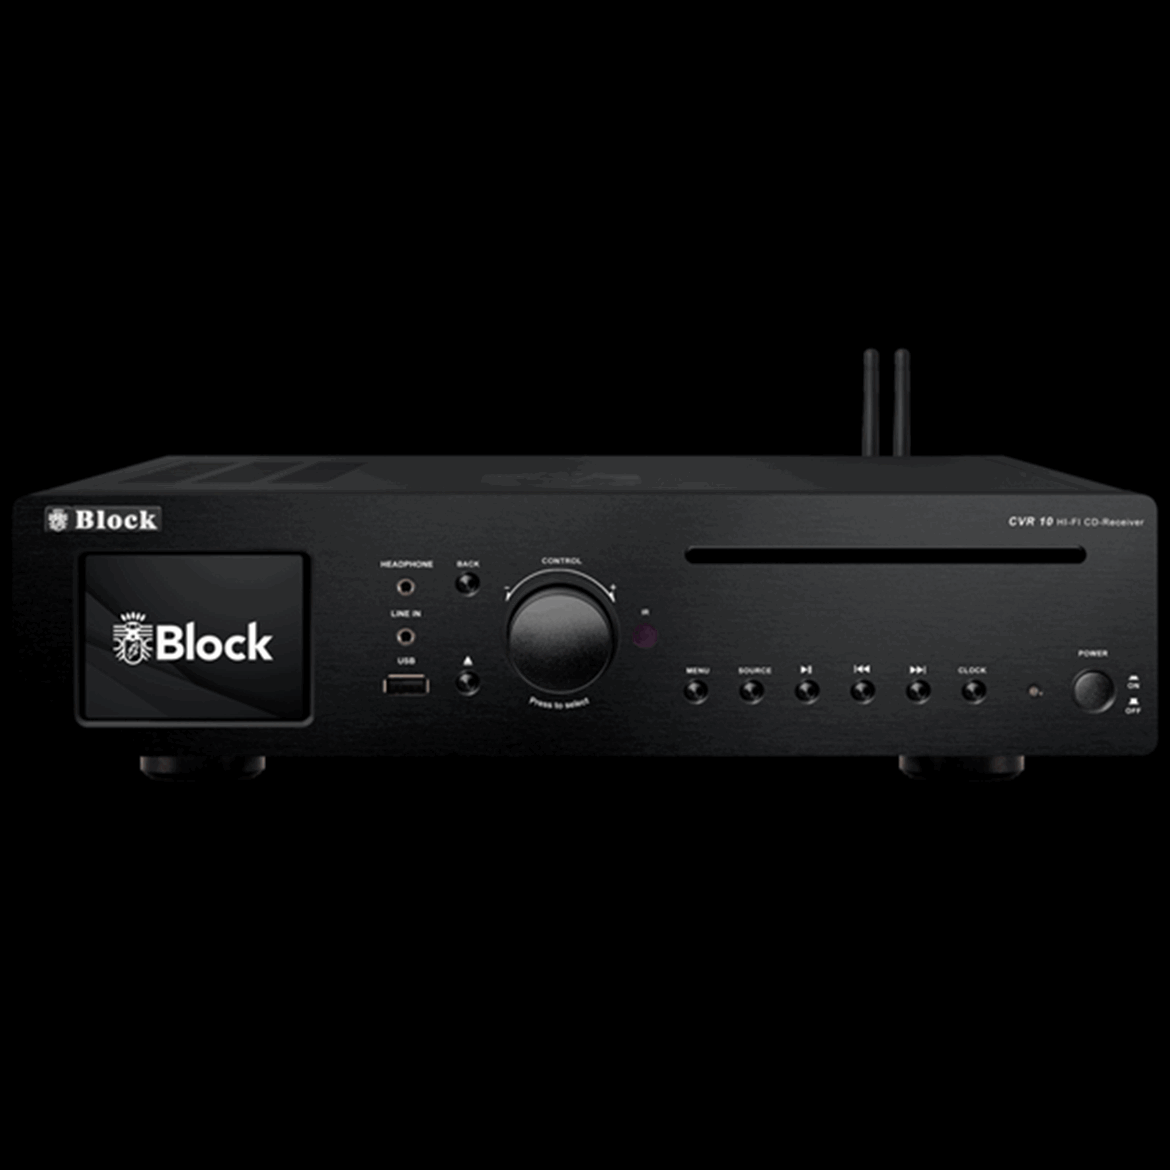 Block Audio CVR-10  -  CD-Internet-Receiver tudo em um. Amplificador toroidal 2 x 30 W, rádio FM/DAB/Internet, ethernet, wifi, bluetooth, spotify, nas, server, media player, Spotify Connect, display a cores com capas, alarme duplo.